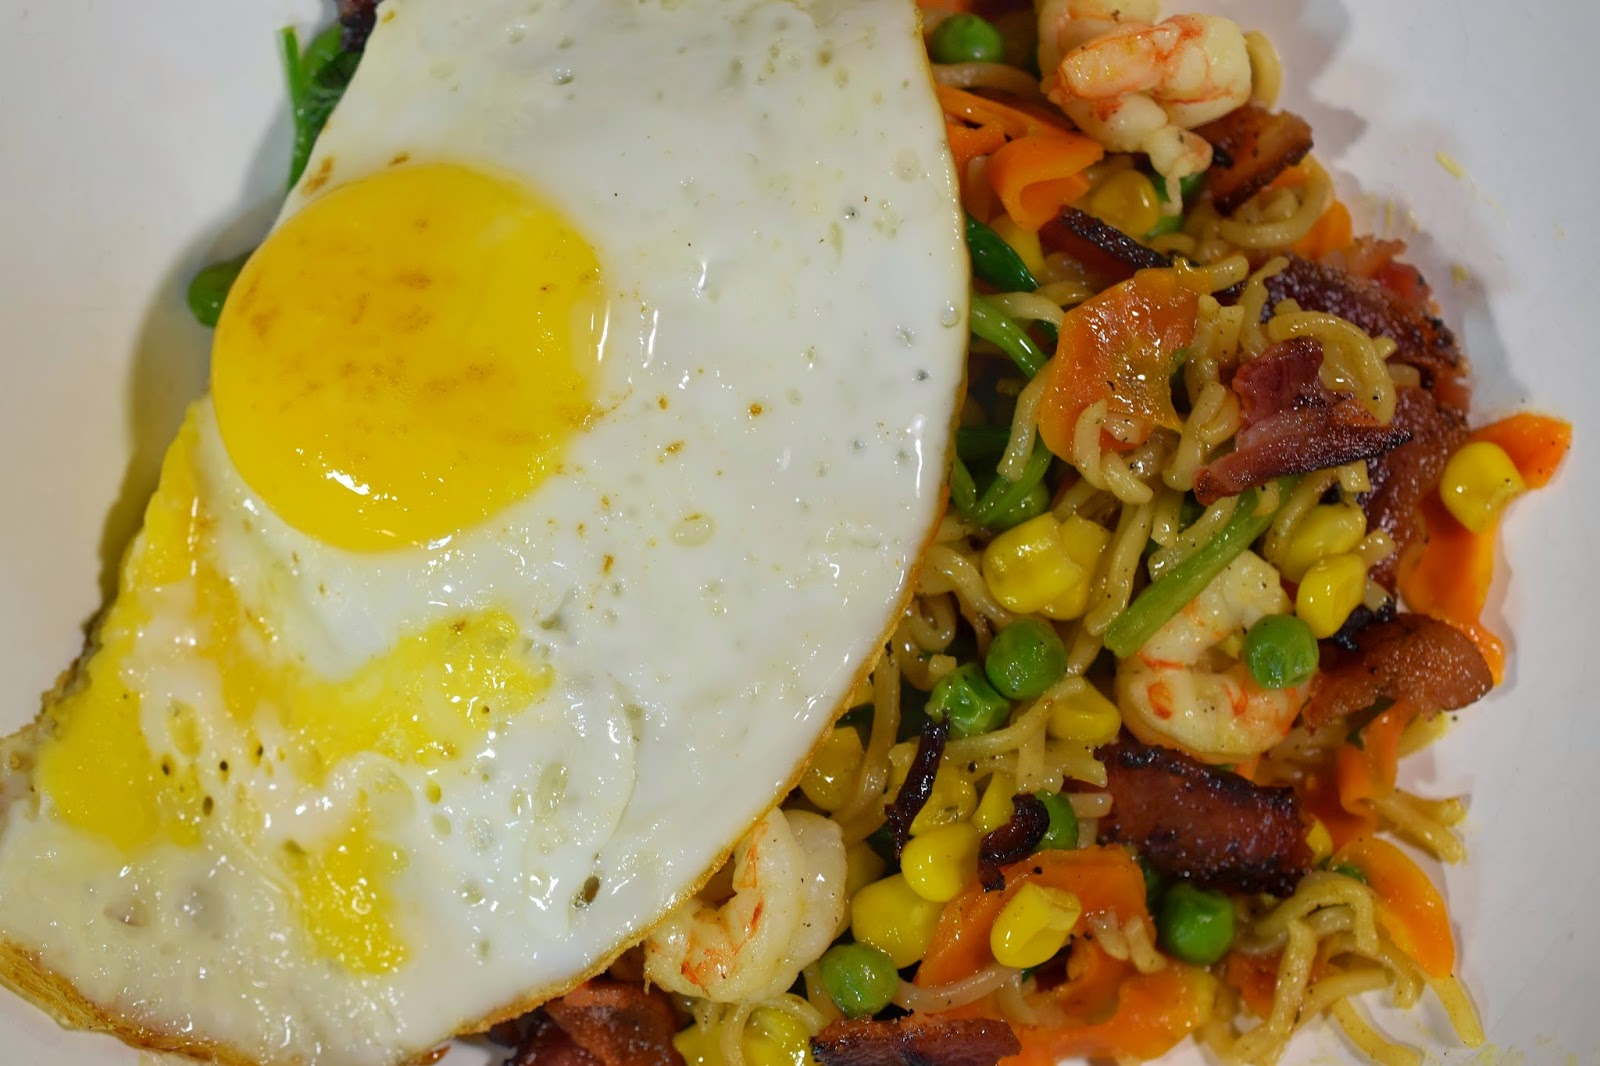 Shrimp Ramen Stir-fry with Bacon and Eggs